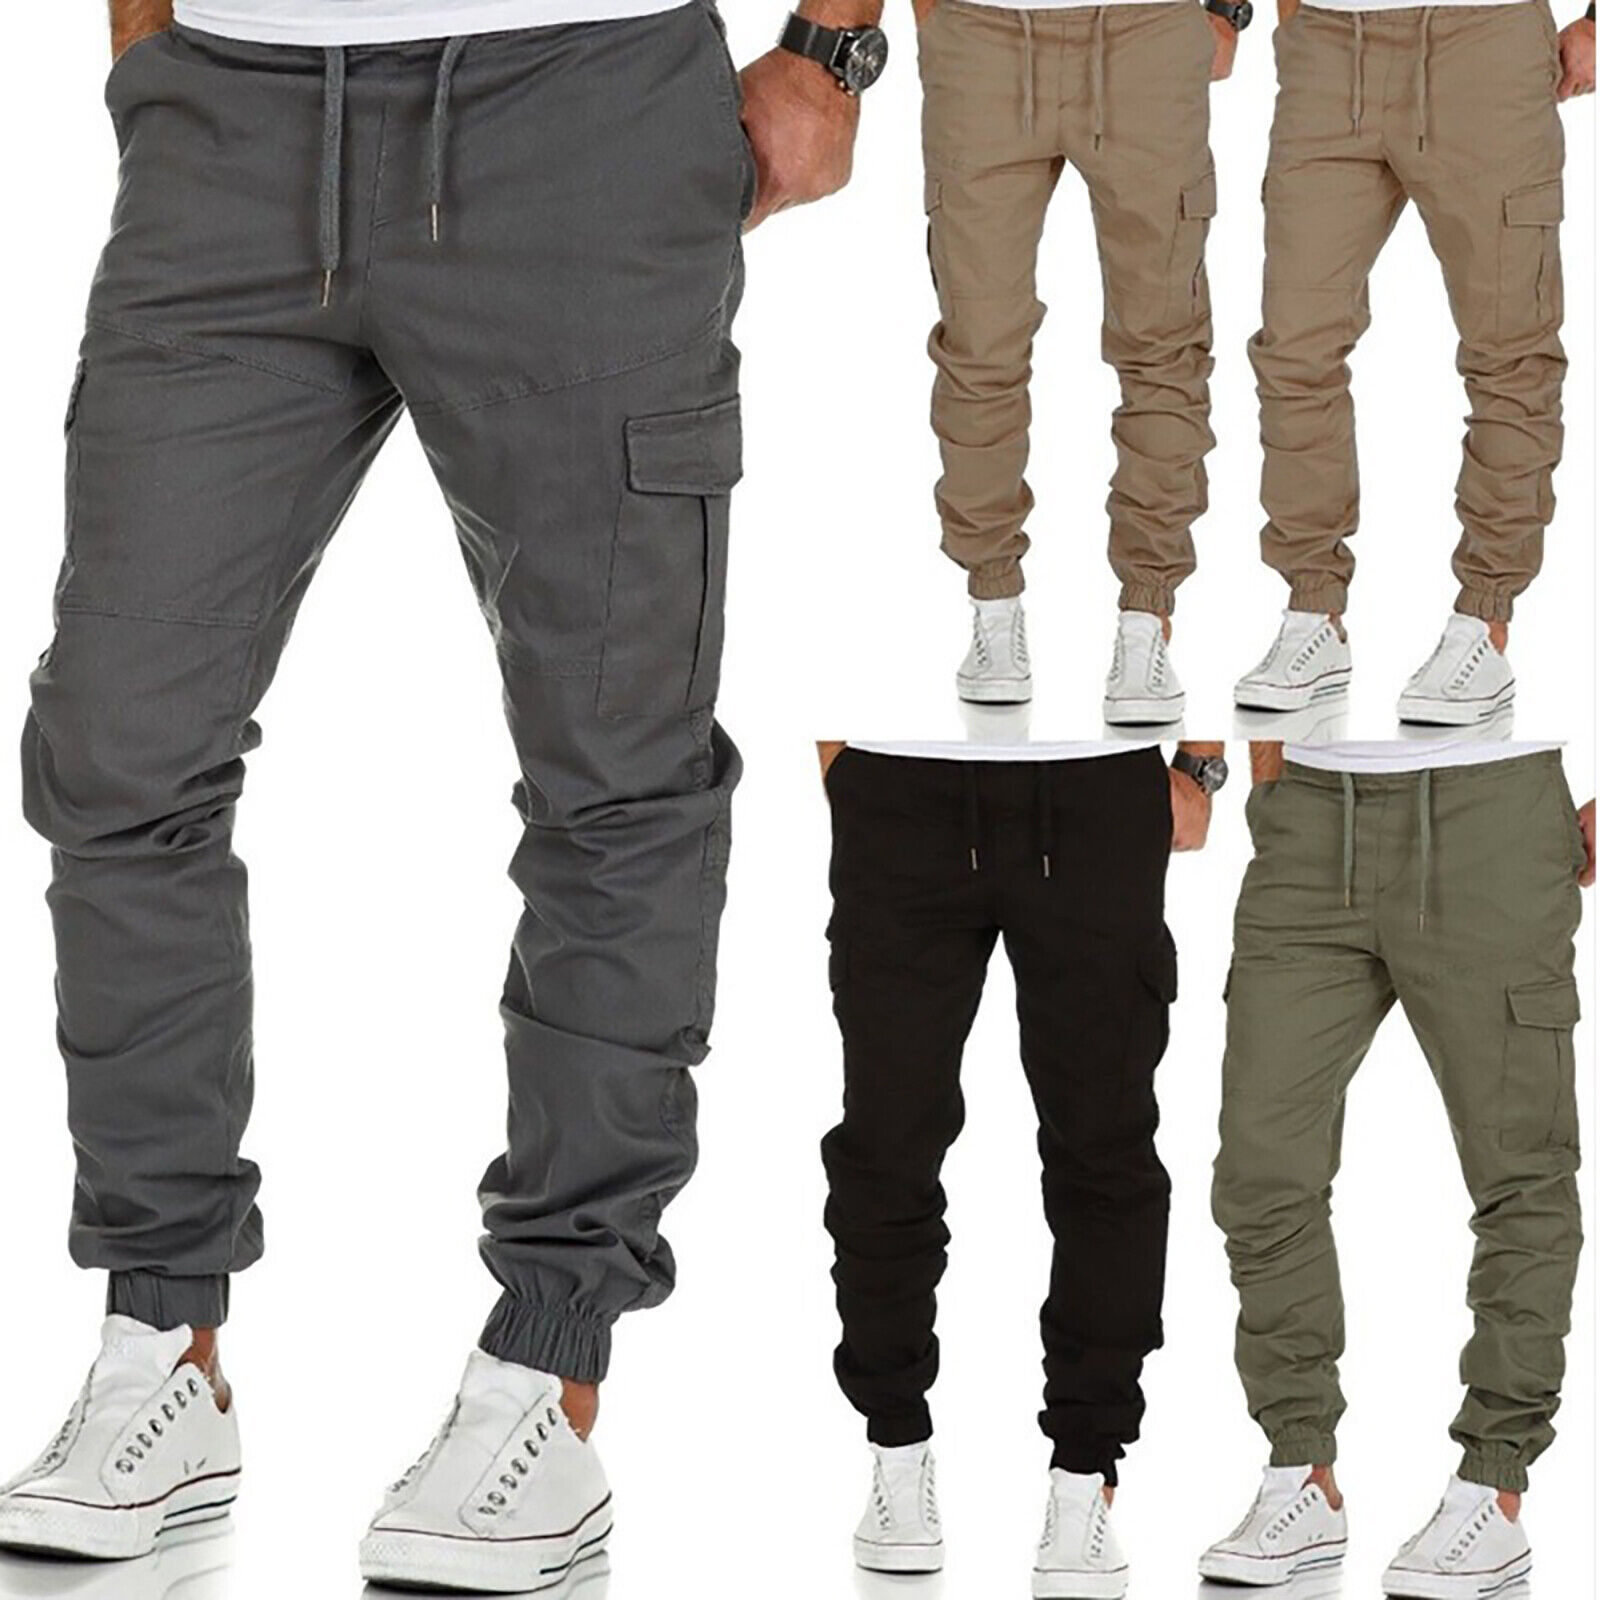 Cargo joggers mens cargo compartment